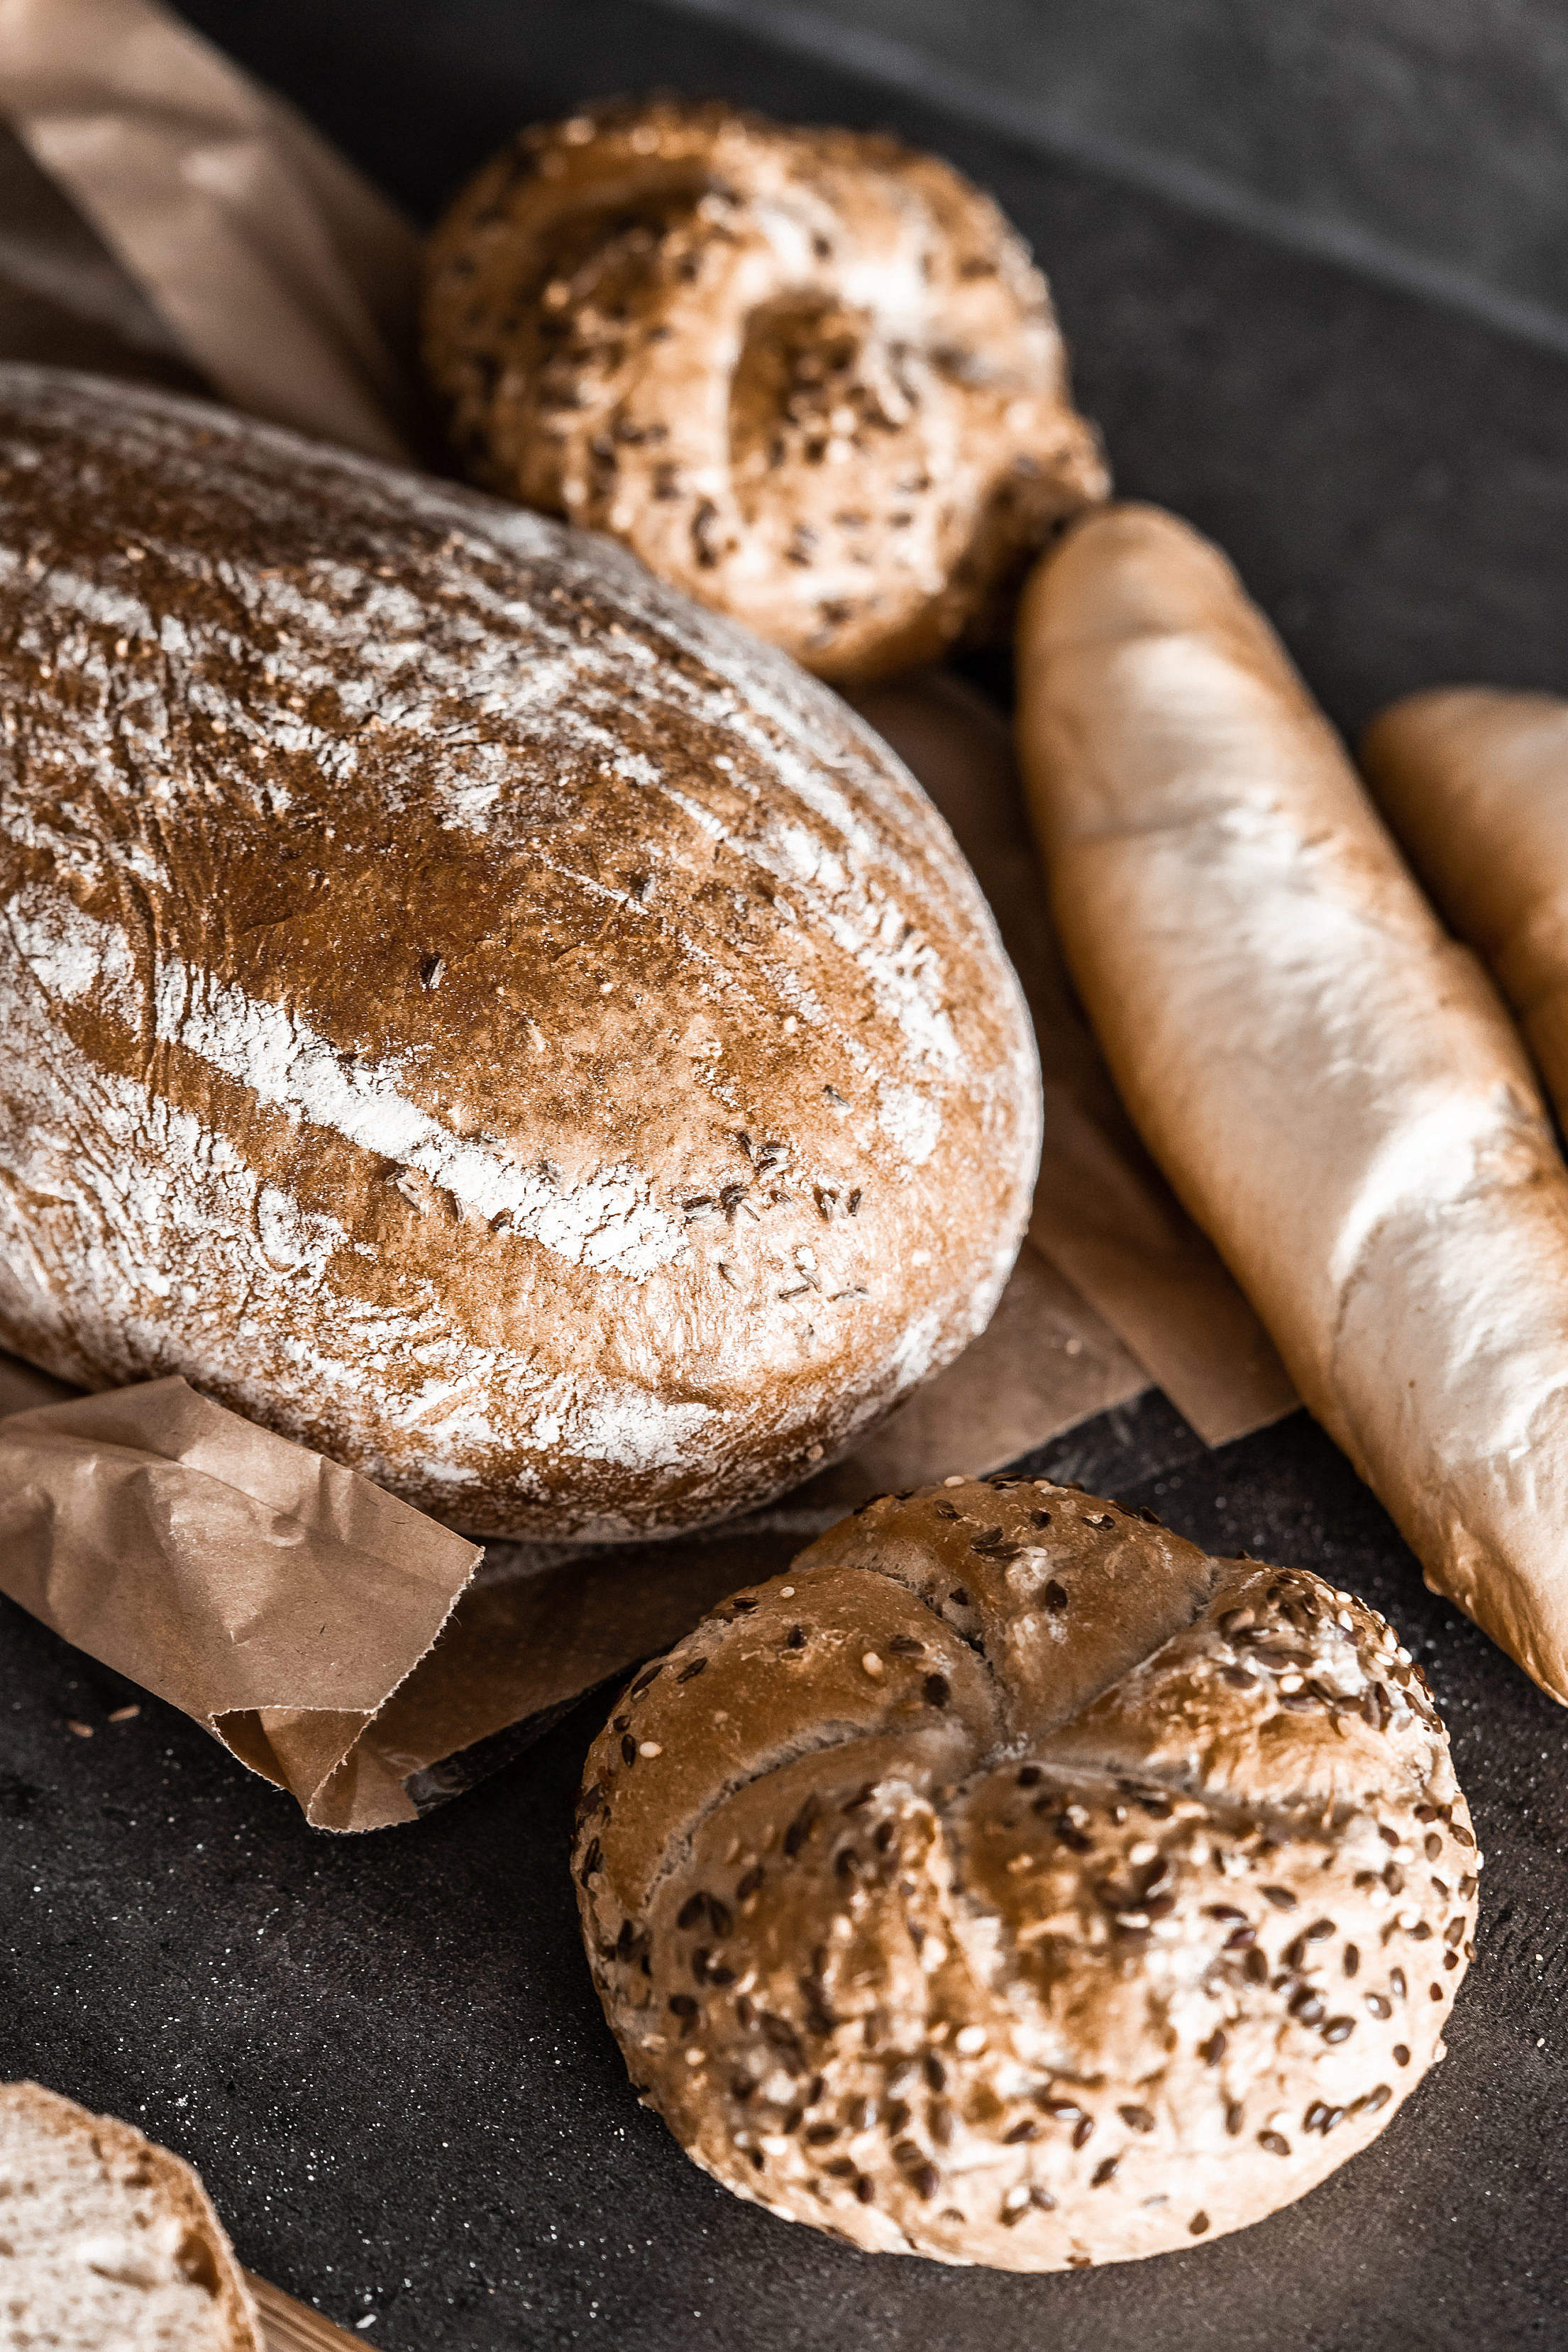 Bread and Other Baked Goods Free Stock Photo